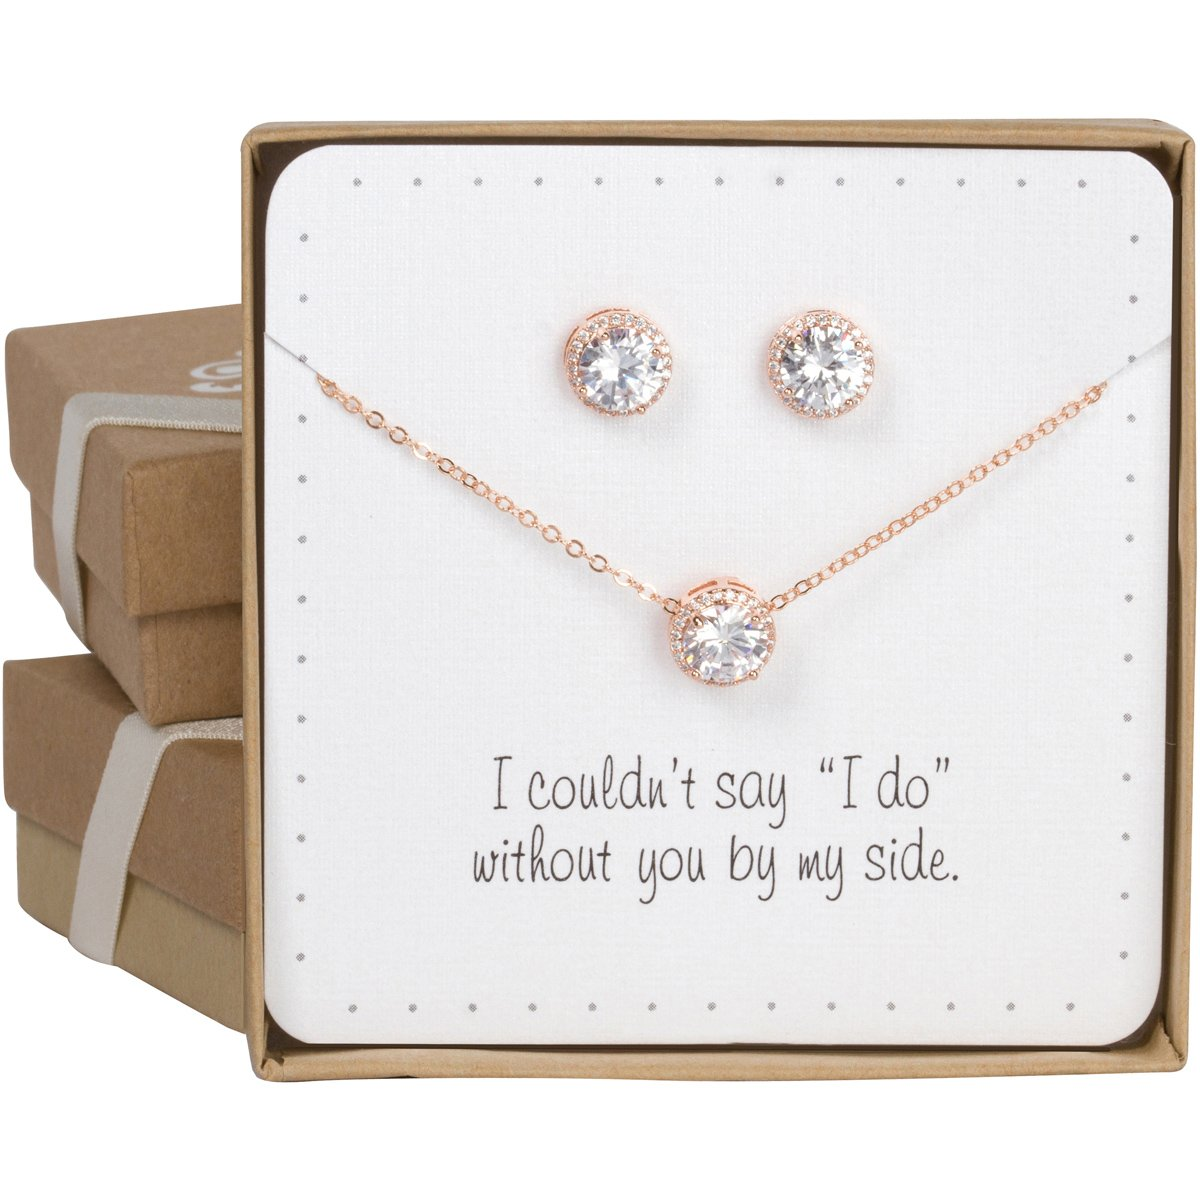 Bridesmaid Gifts - Pretty Halo Cubic-Zirconia Necklace & Earrings Set (18'', Rose gold)